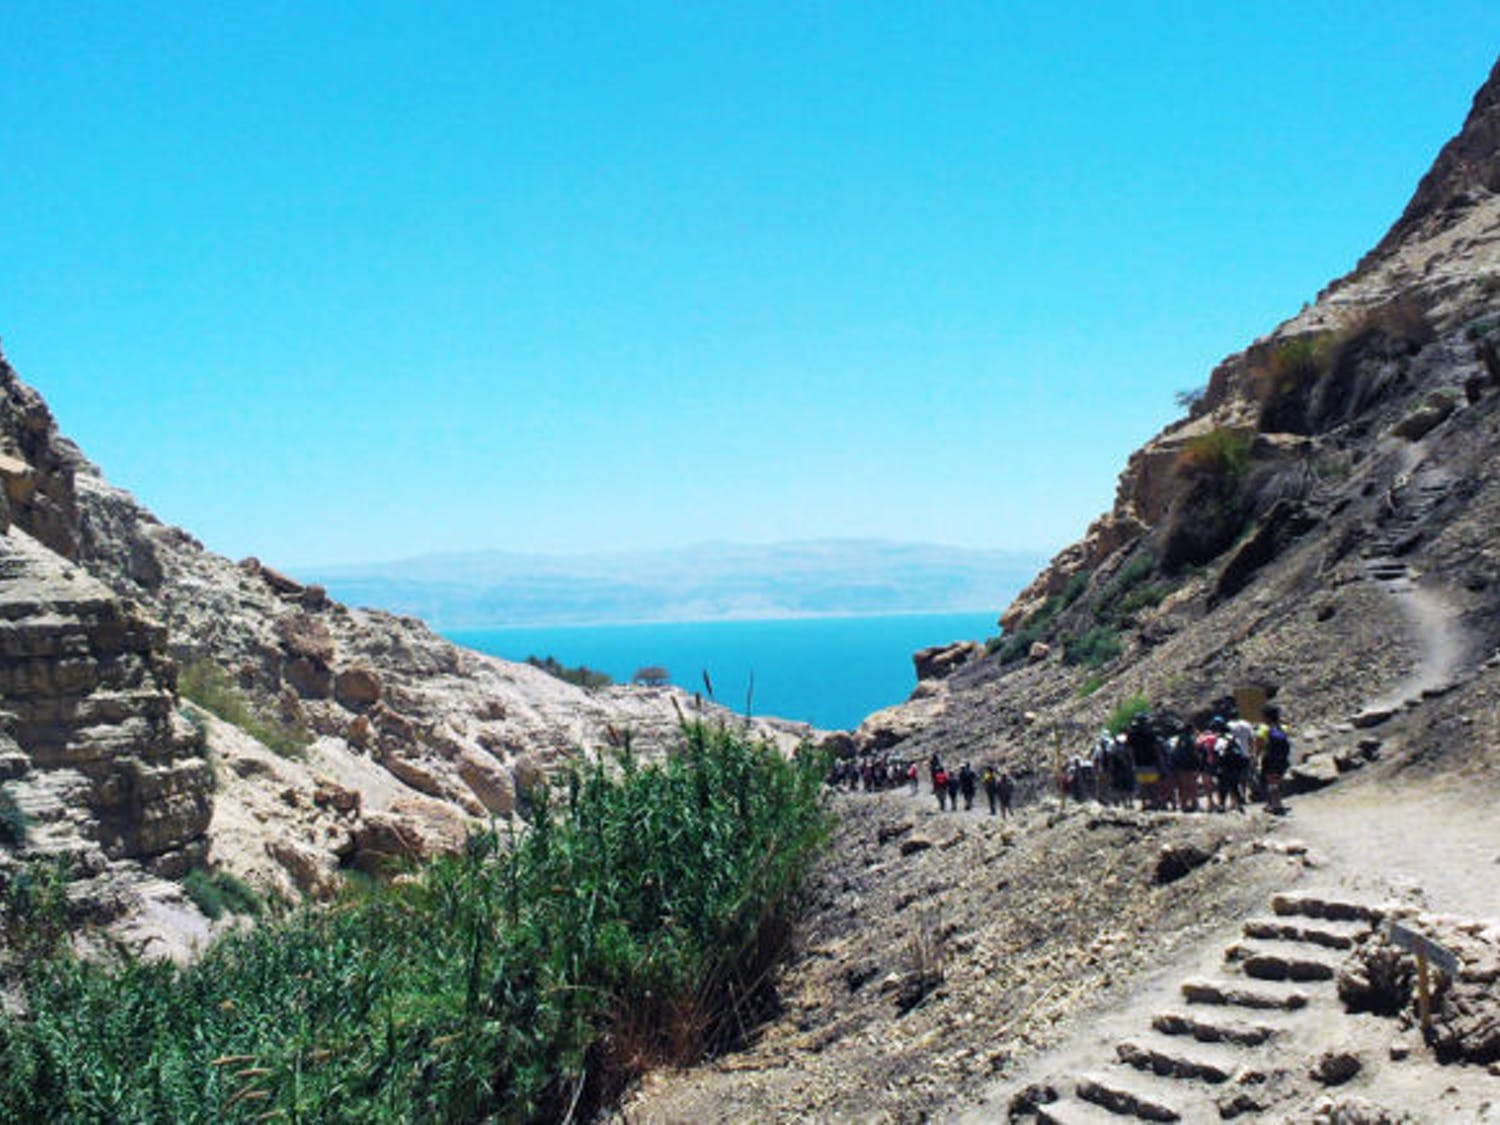 A group of UF students hikes in the Ein Gedi Nature Reserve, located near Israel's Dead Sea, during a Birthright trip in May. UF Hillel takes Jewish students on the free, 10-day trip in the winter and summer.